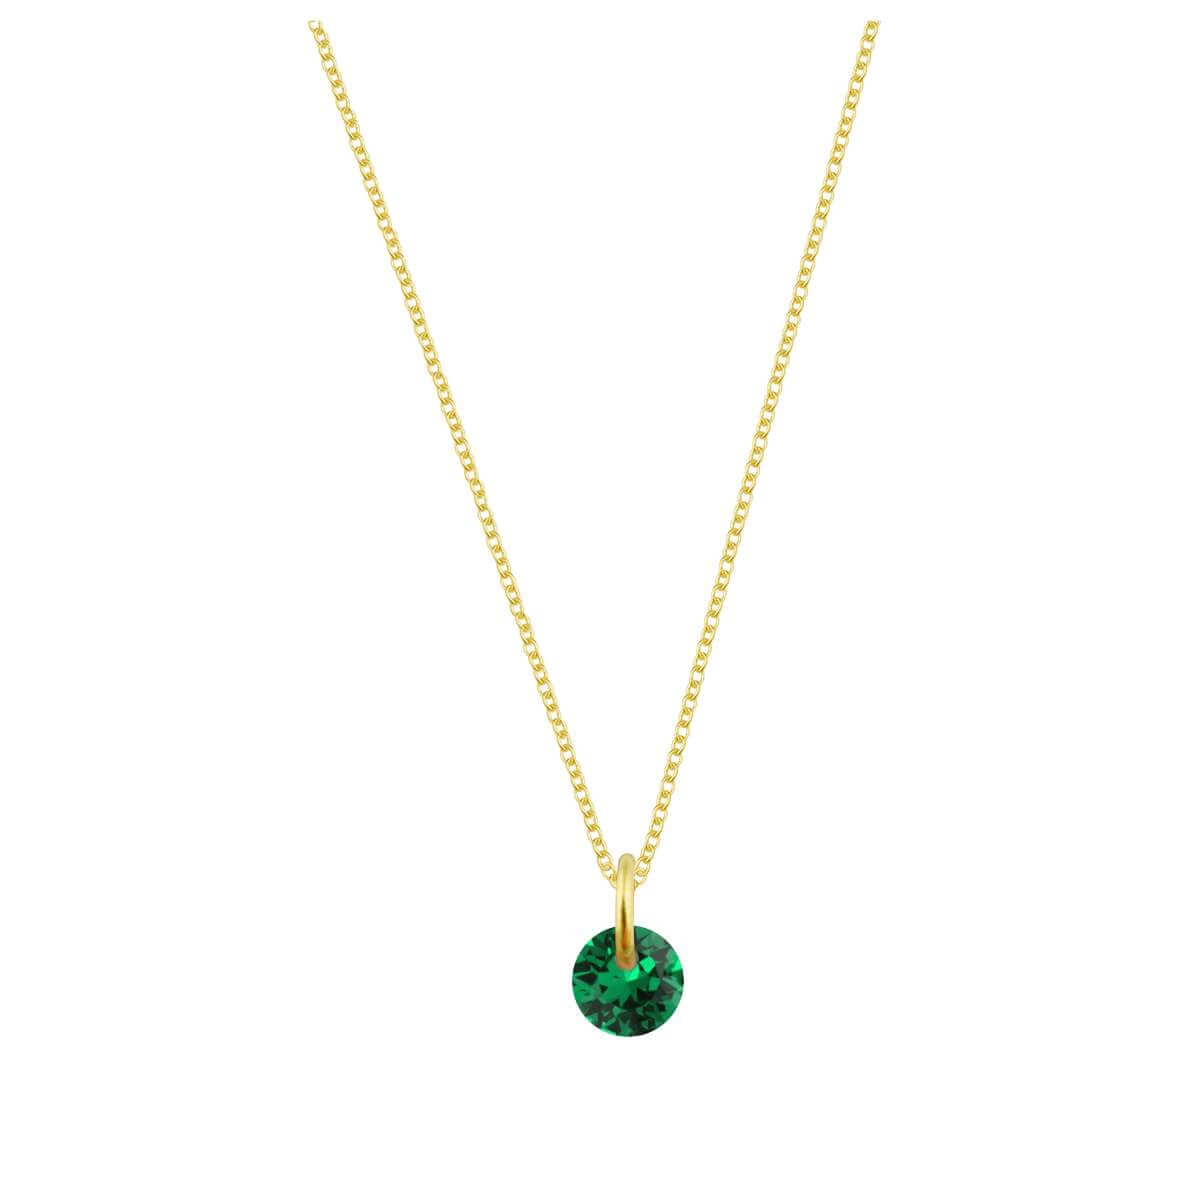 Gold Plated Sterling Silver & 4mm Emerald CZ Necklace - 16 - 22 Inches